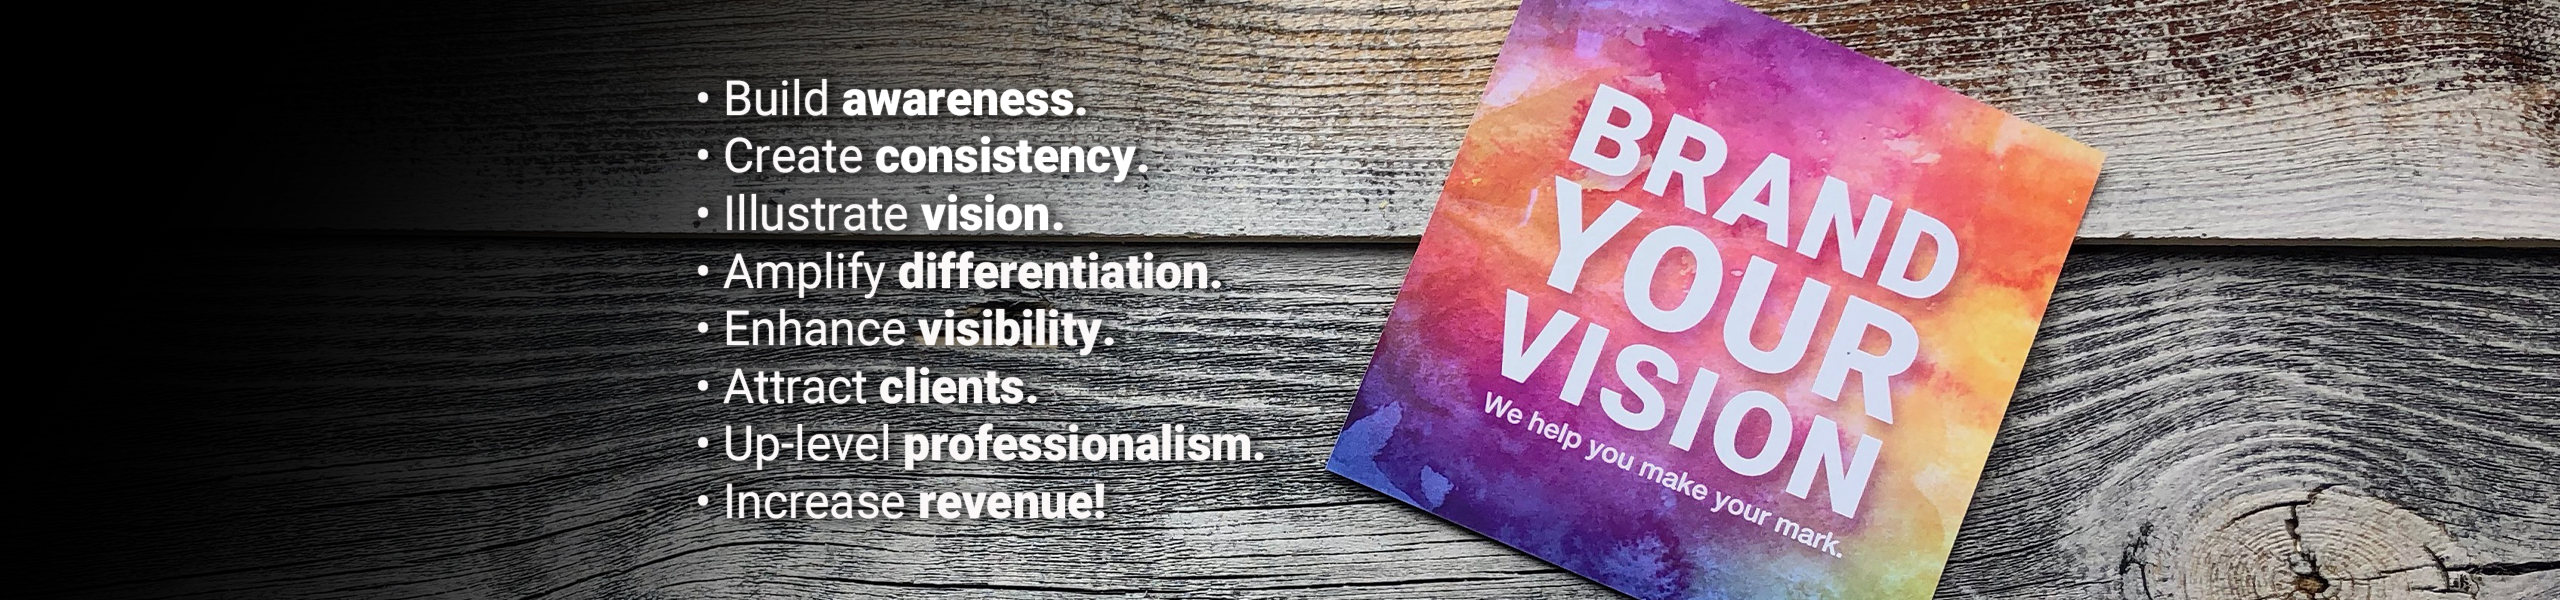 Brand Your Vision Benefits